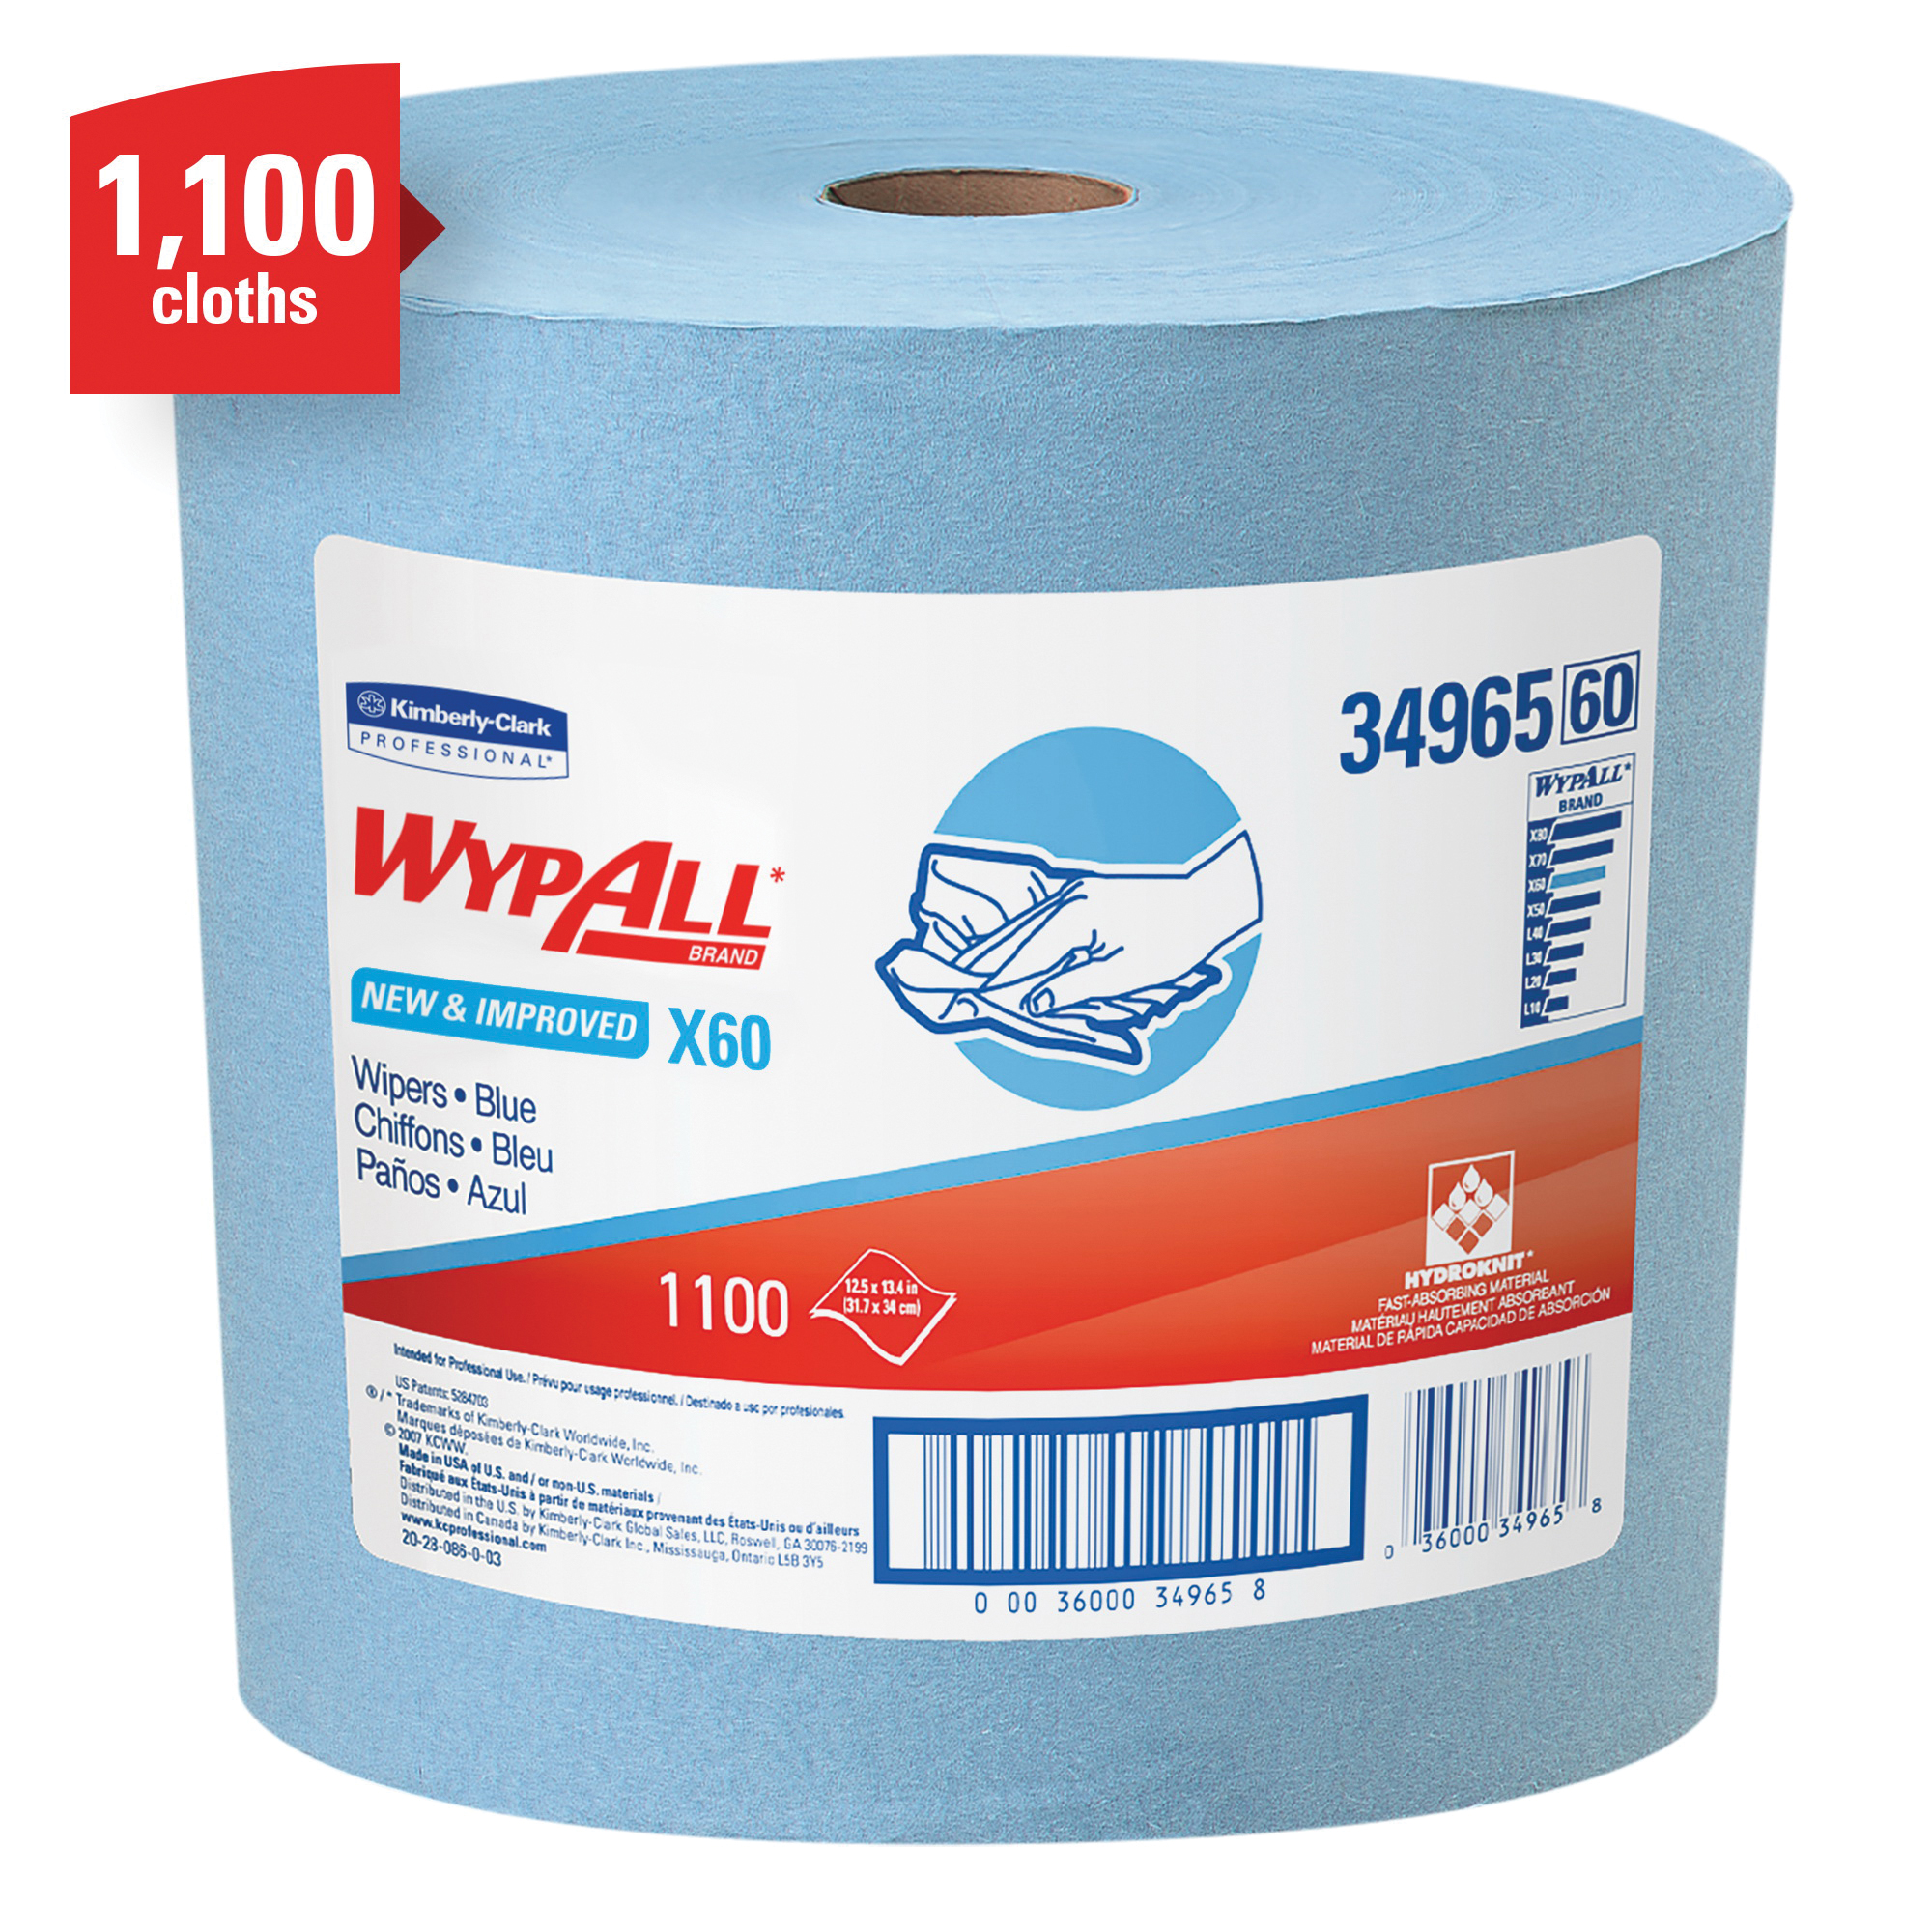 WypAll* 34865 X60 Hygienic Washcloth, 12-1/2 x 12 in, 76 Sheets Capacity, Hydroknit*, White